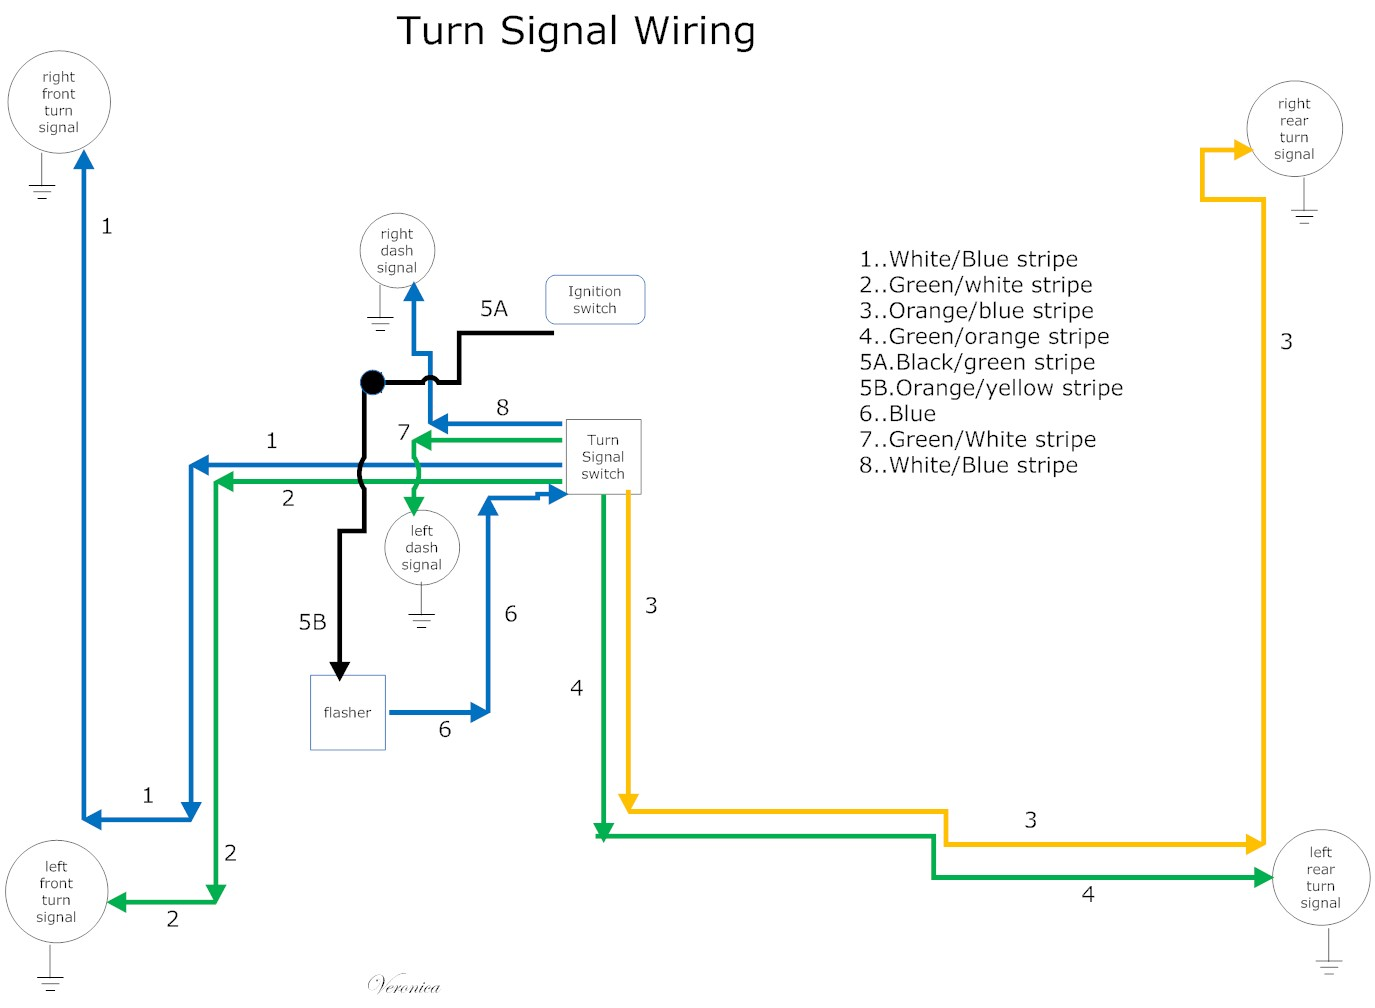 DIAGRAM] 91 Mustang Turn Signal Wiring Diagram FULL Version HD Quality Wiring  Diagram - ECOLOGYDIAGRAMS.BELLEILMERSION.FRecologydiagrams.belleilmersion.fr